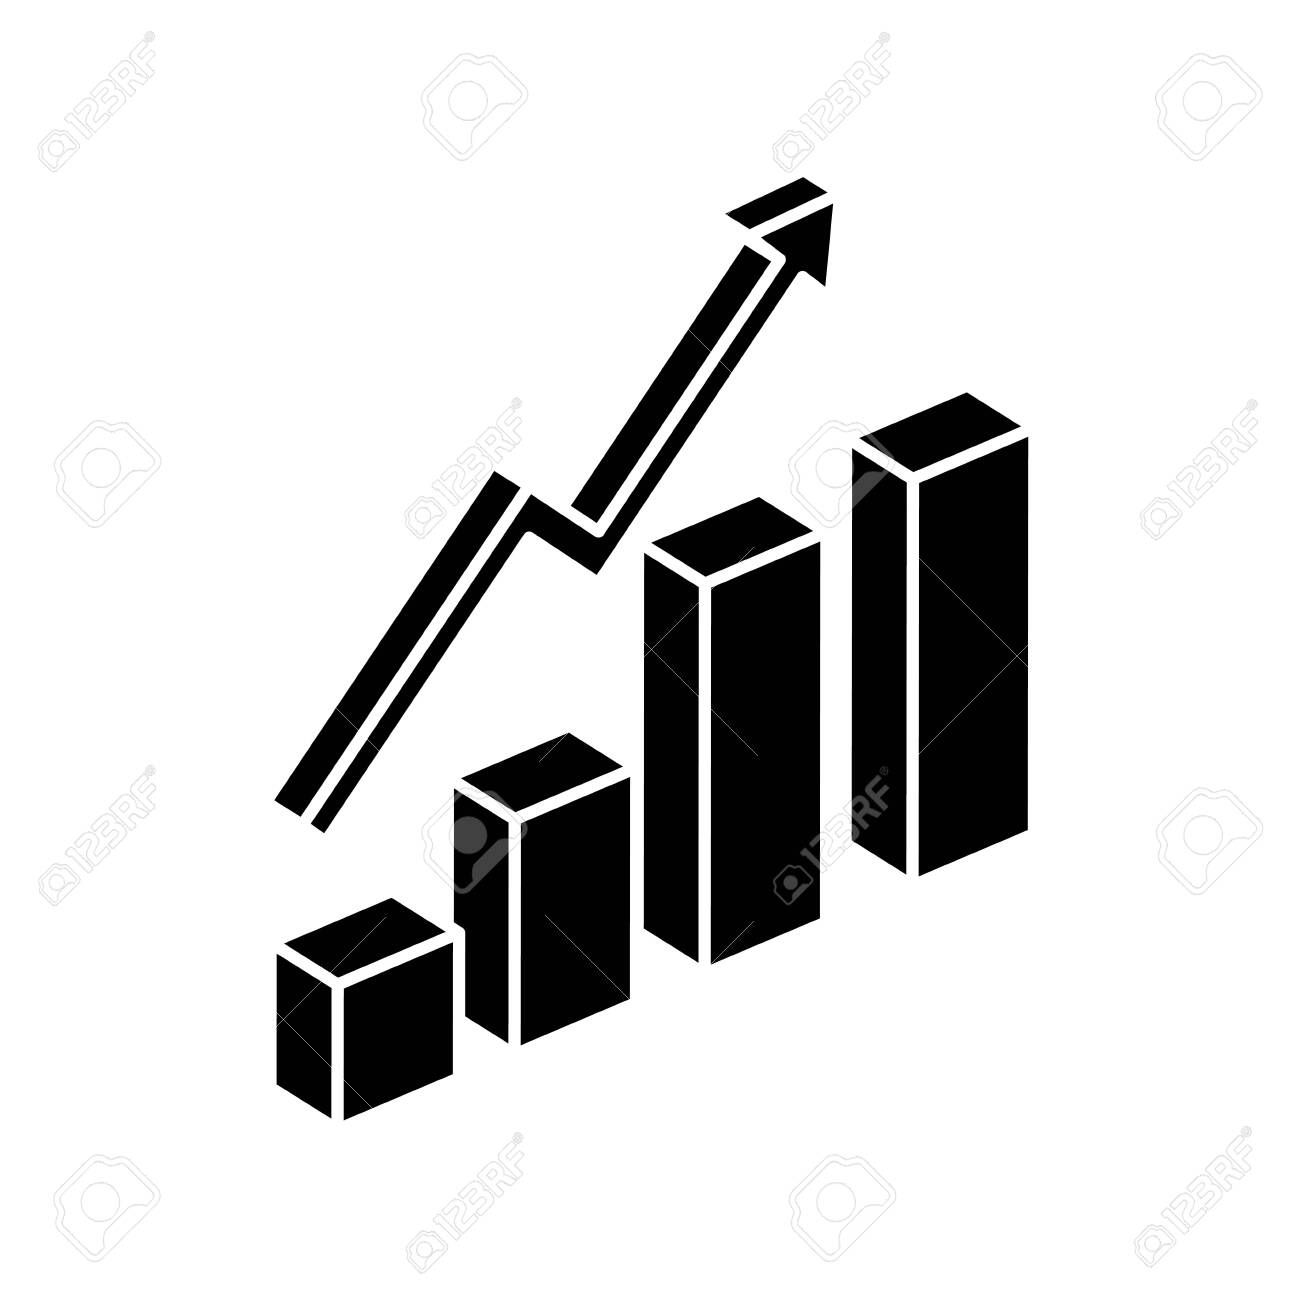 Silhouette Of Bars Statistical Graph With Arrow Up Isolated Icon Vector Illustration De Vector Illustration Design Social Media Logos Icons Illustration Design